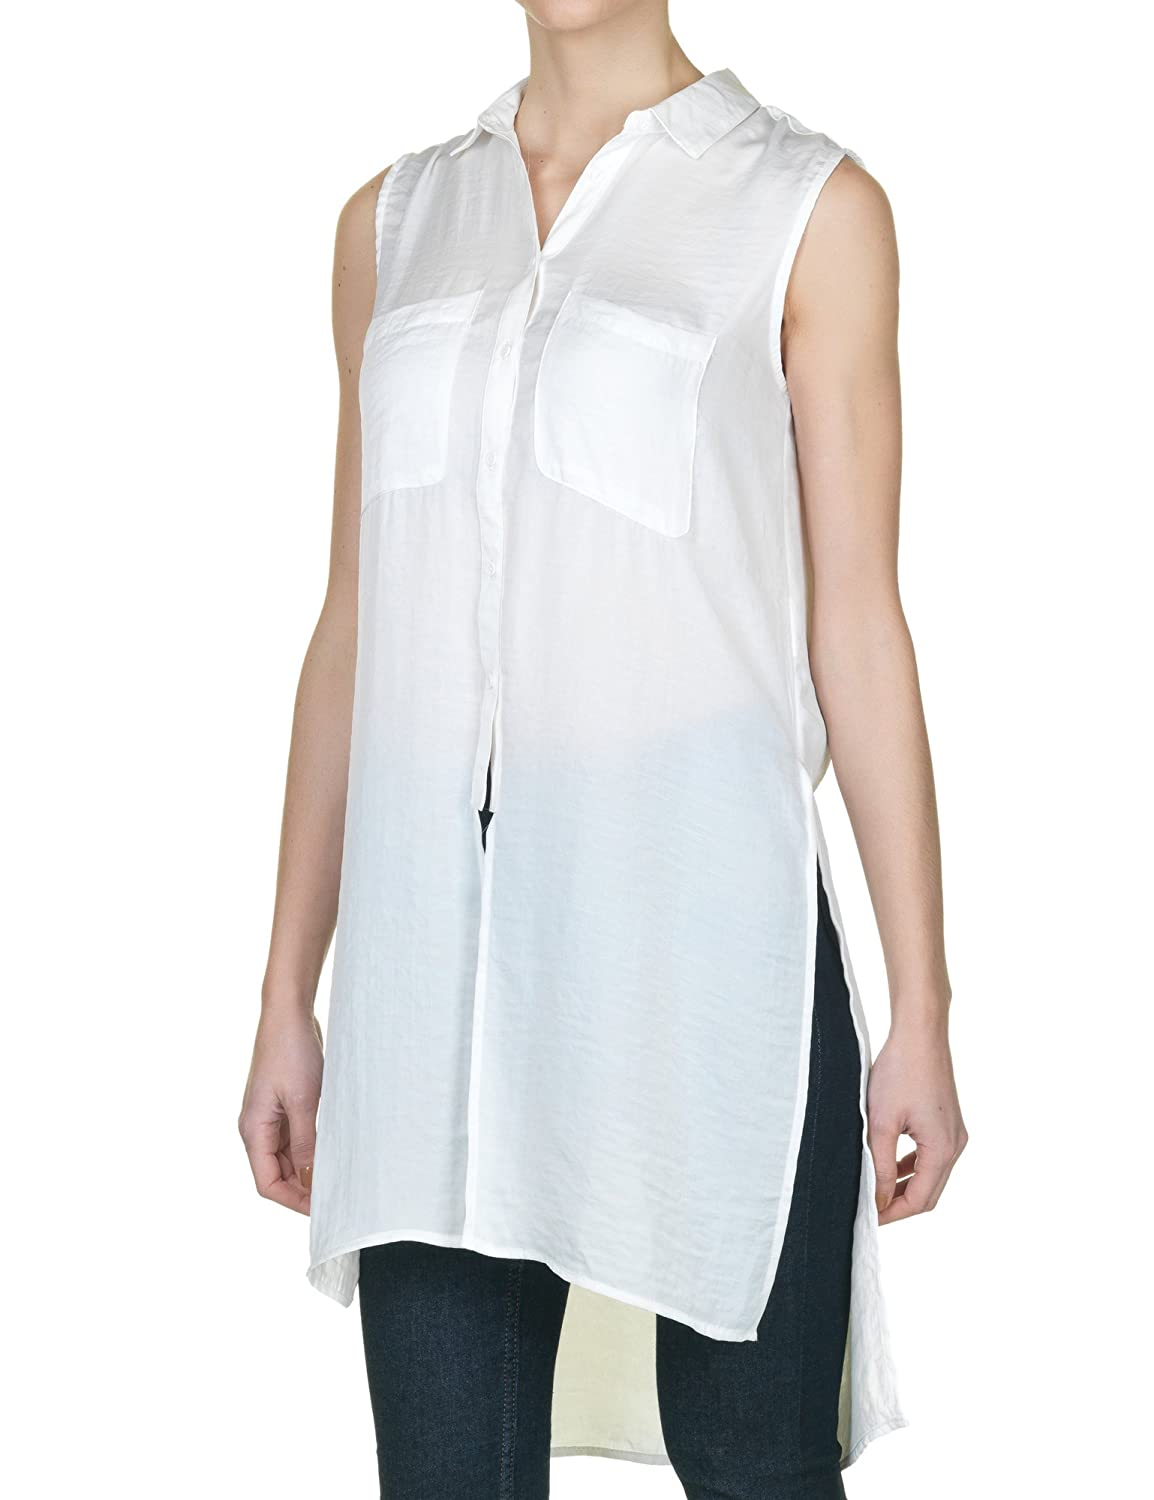 Sublevel Women's White Shirt Semi Transparent 100% Polyester